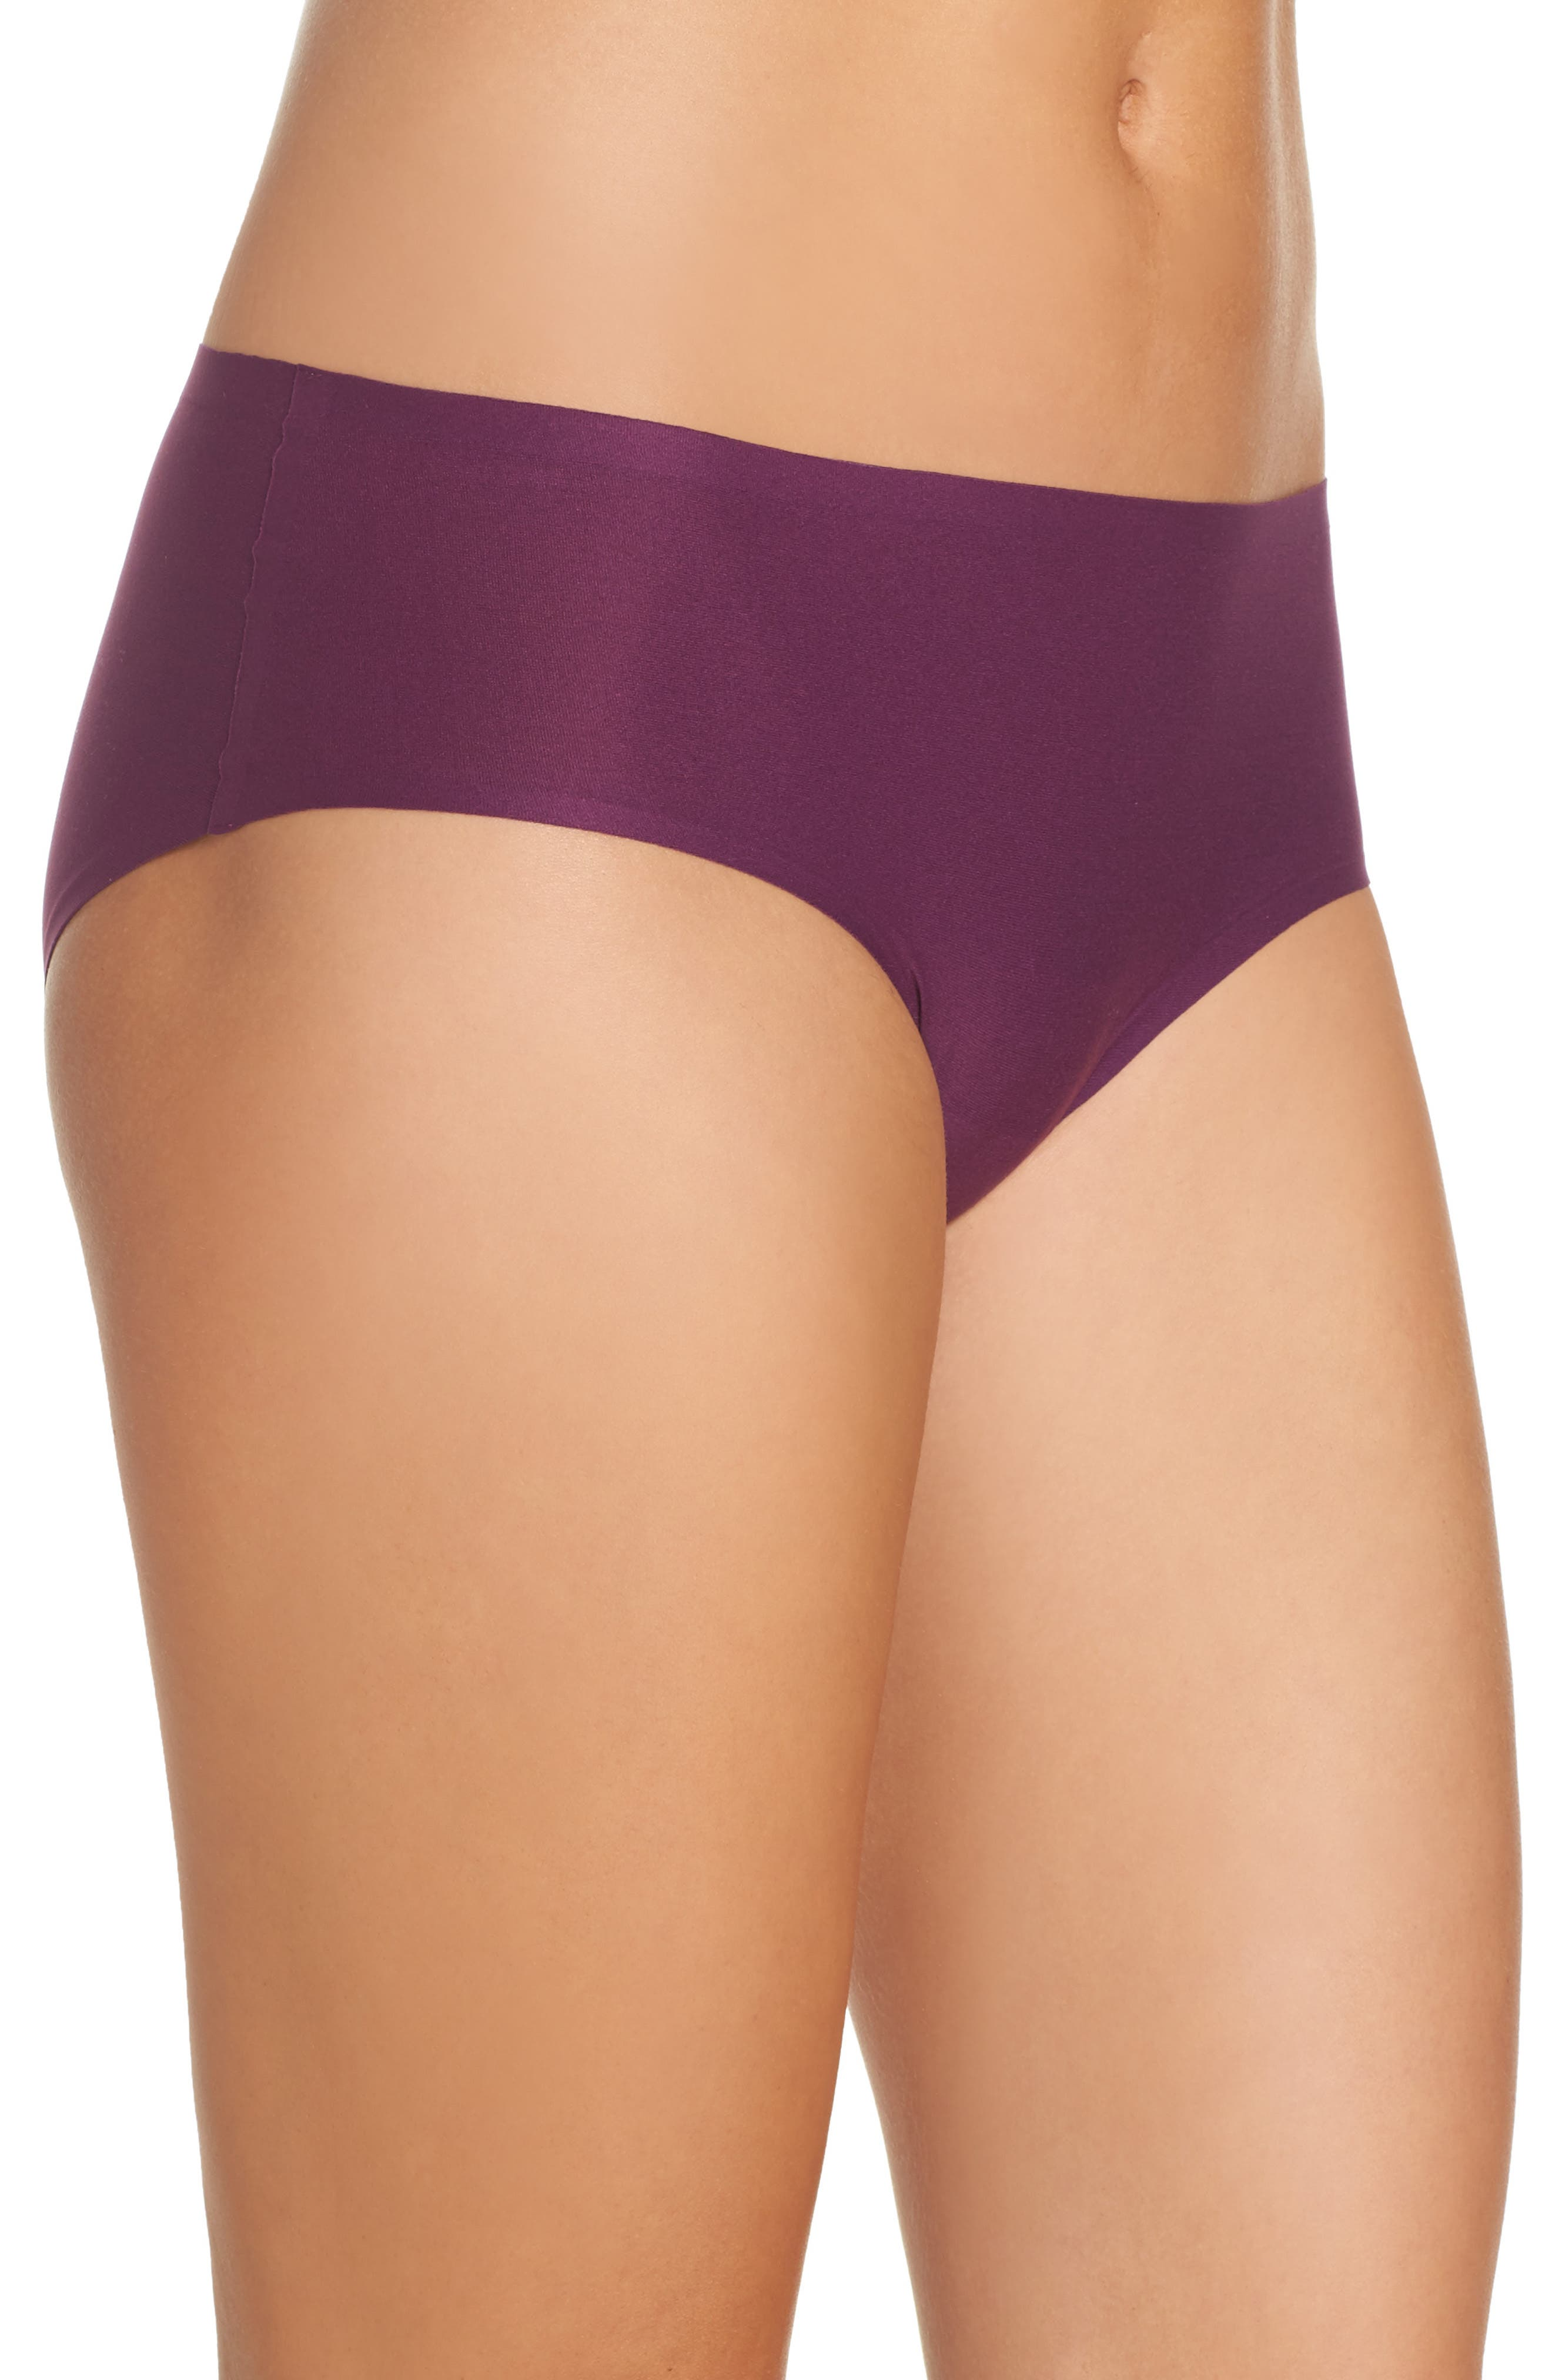 Alternate Image 3  - Chantelle Intimates Soft Stretch Seamless Hipster Panties